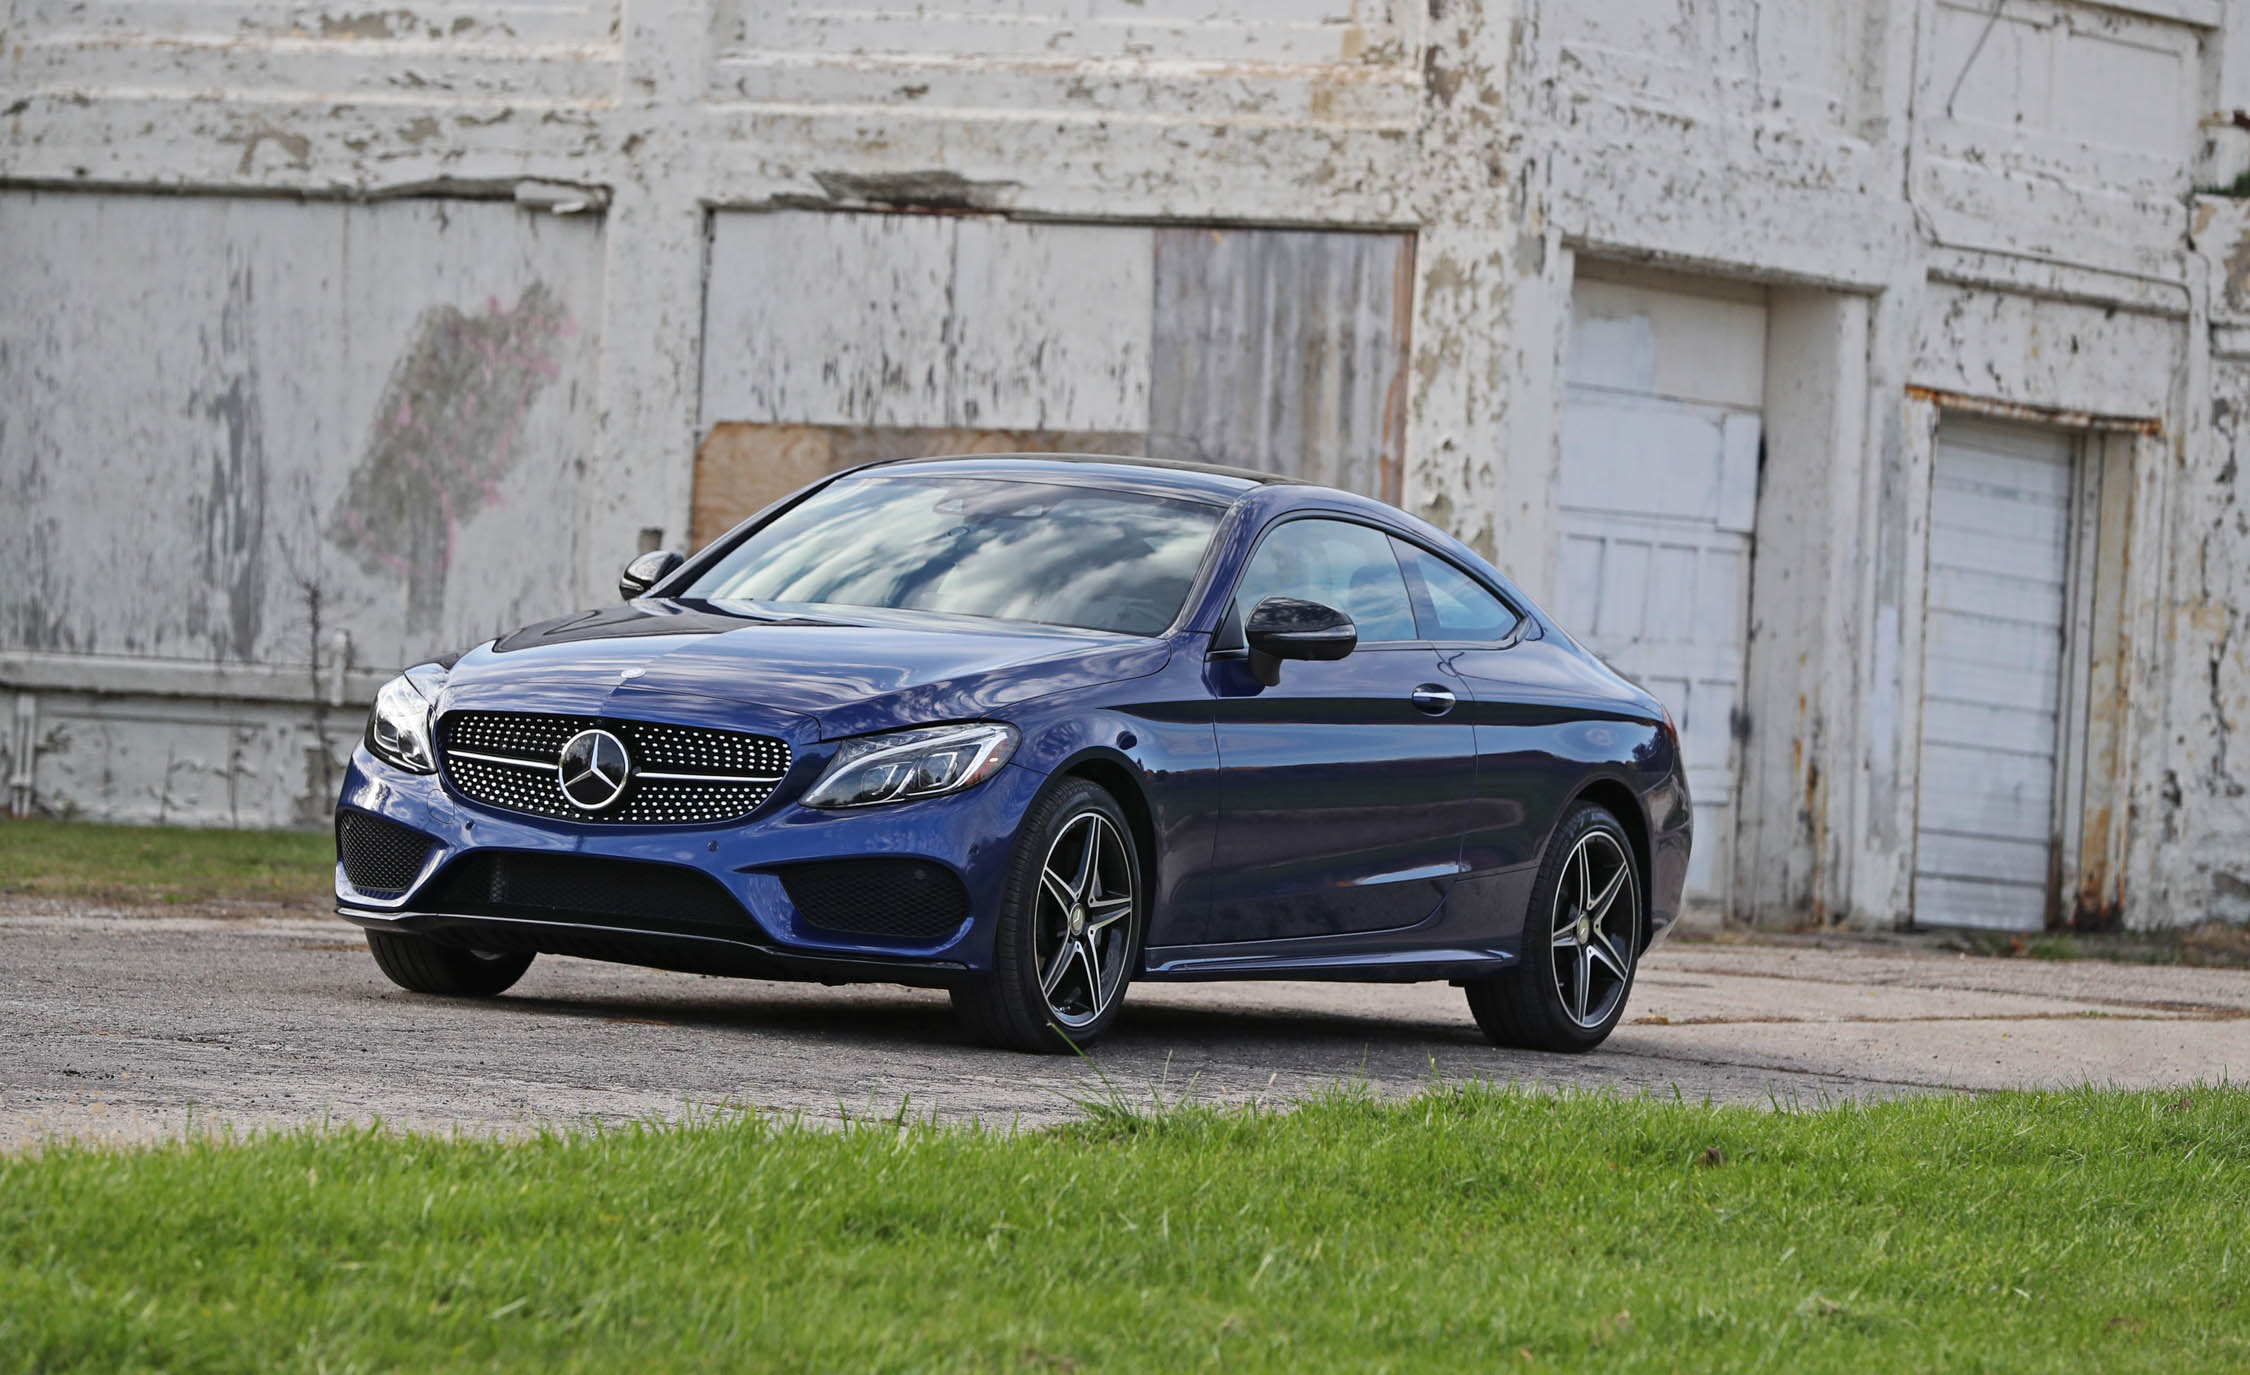 2017 Mercedes Benz C300 4MATIC Coupe Exterior Front And Side (Photo 6 of 44)